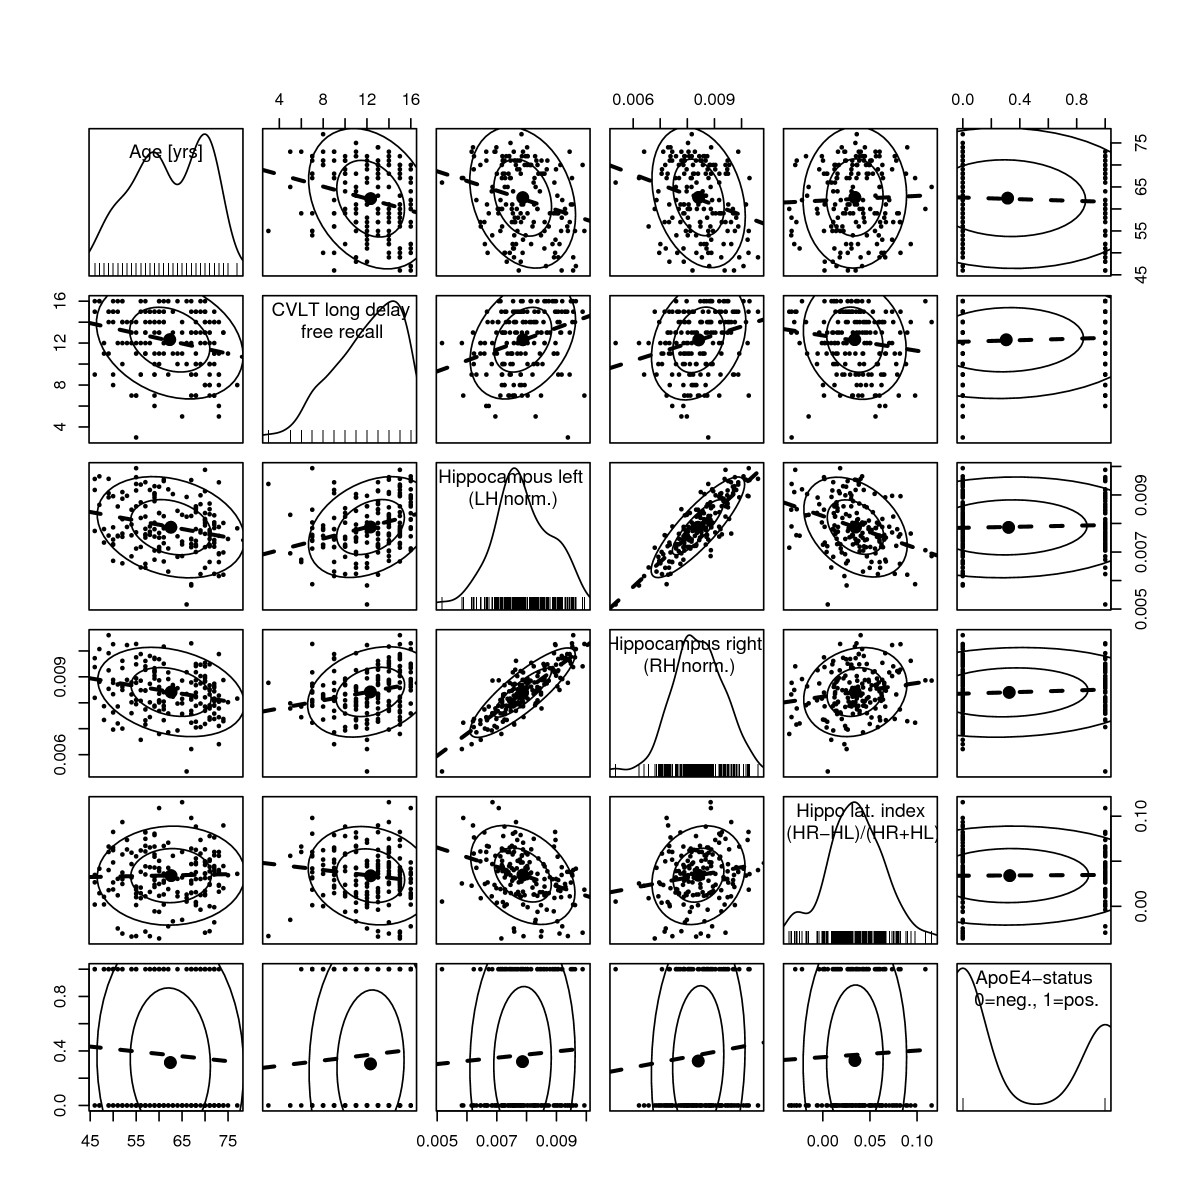 http://static-content.springer.com/image/art%3A10.1186%2F1471-2342-9-17/MediaObjects/12880_2009_Article_75_Fig4_HTML.jpg